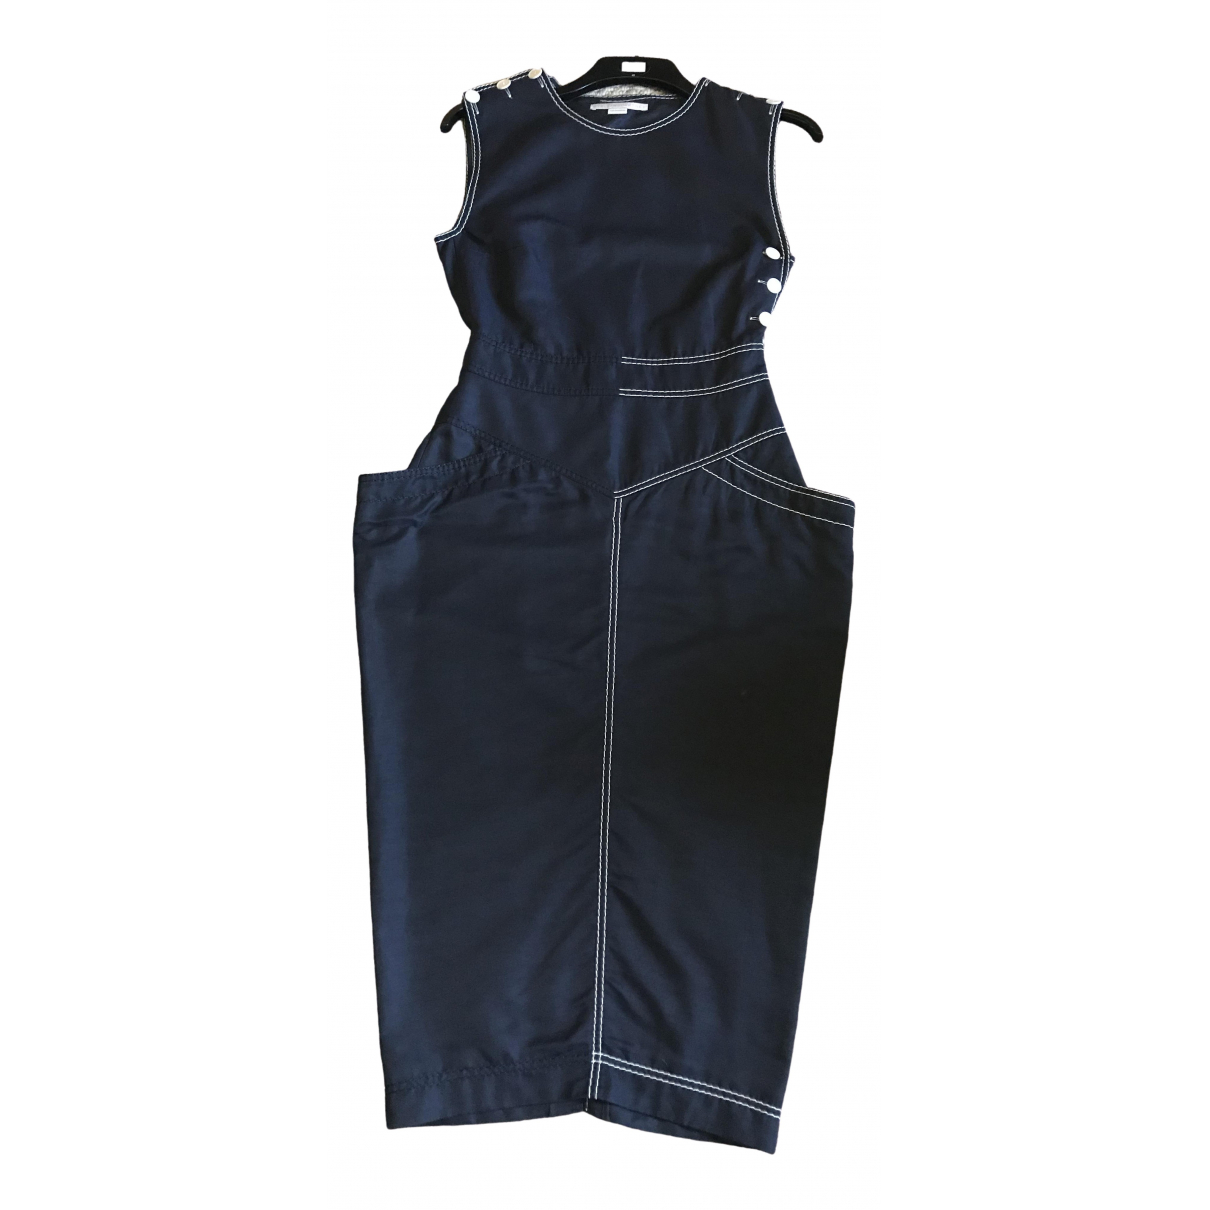 Stella Mccartney \N Navy Cotton dress for Women 40 IT